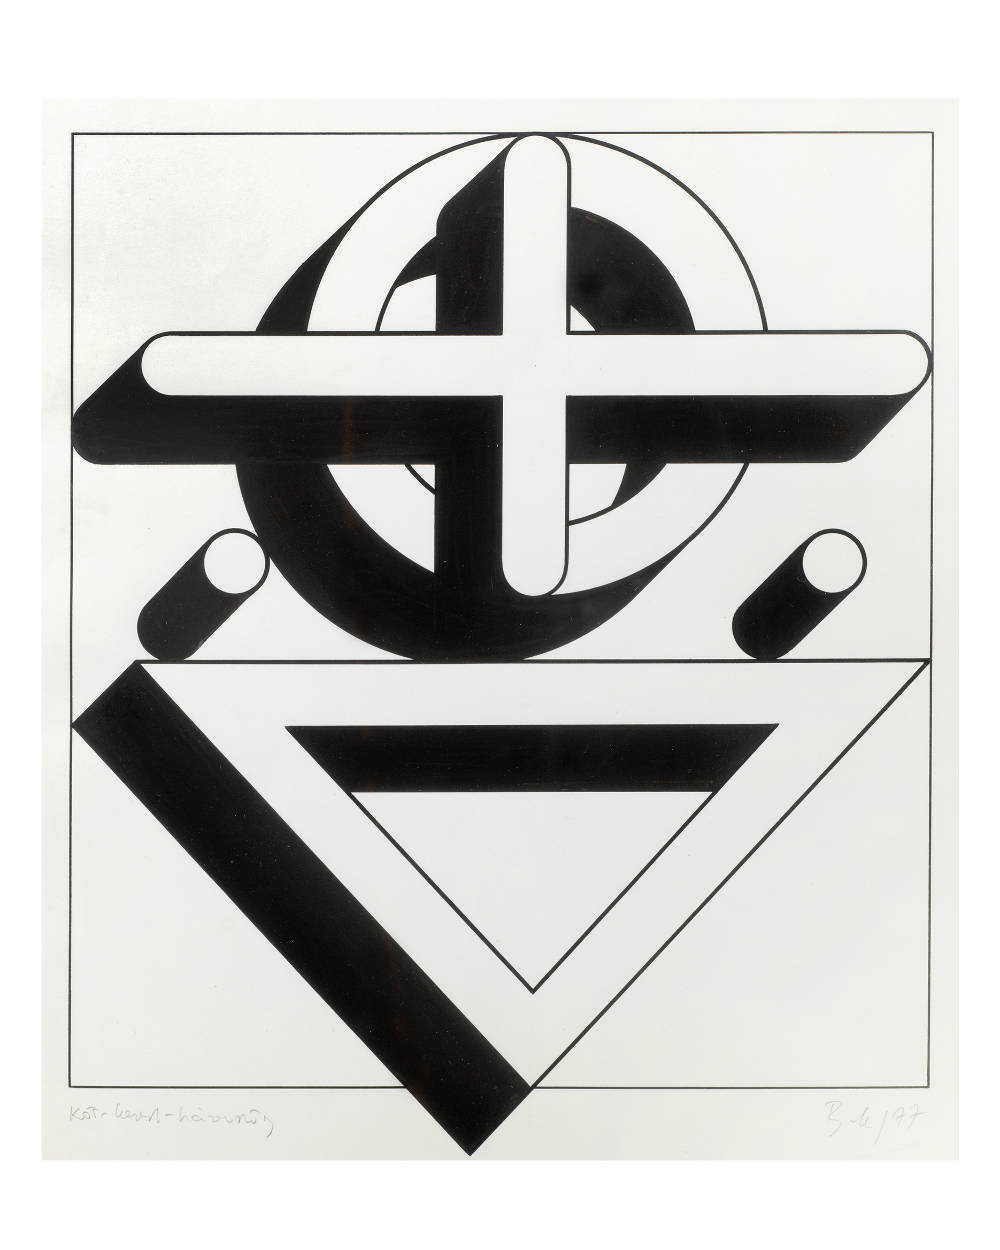 Imre Bak, Circle-Cross-Triangle, 1977. Ink and tempera on paper 32 x 28 cm (12 5/8 x 11 inches)